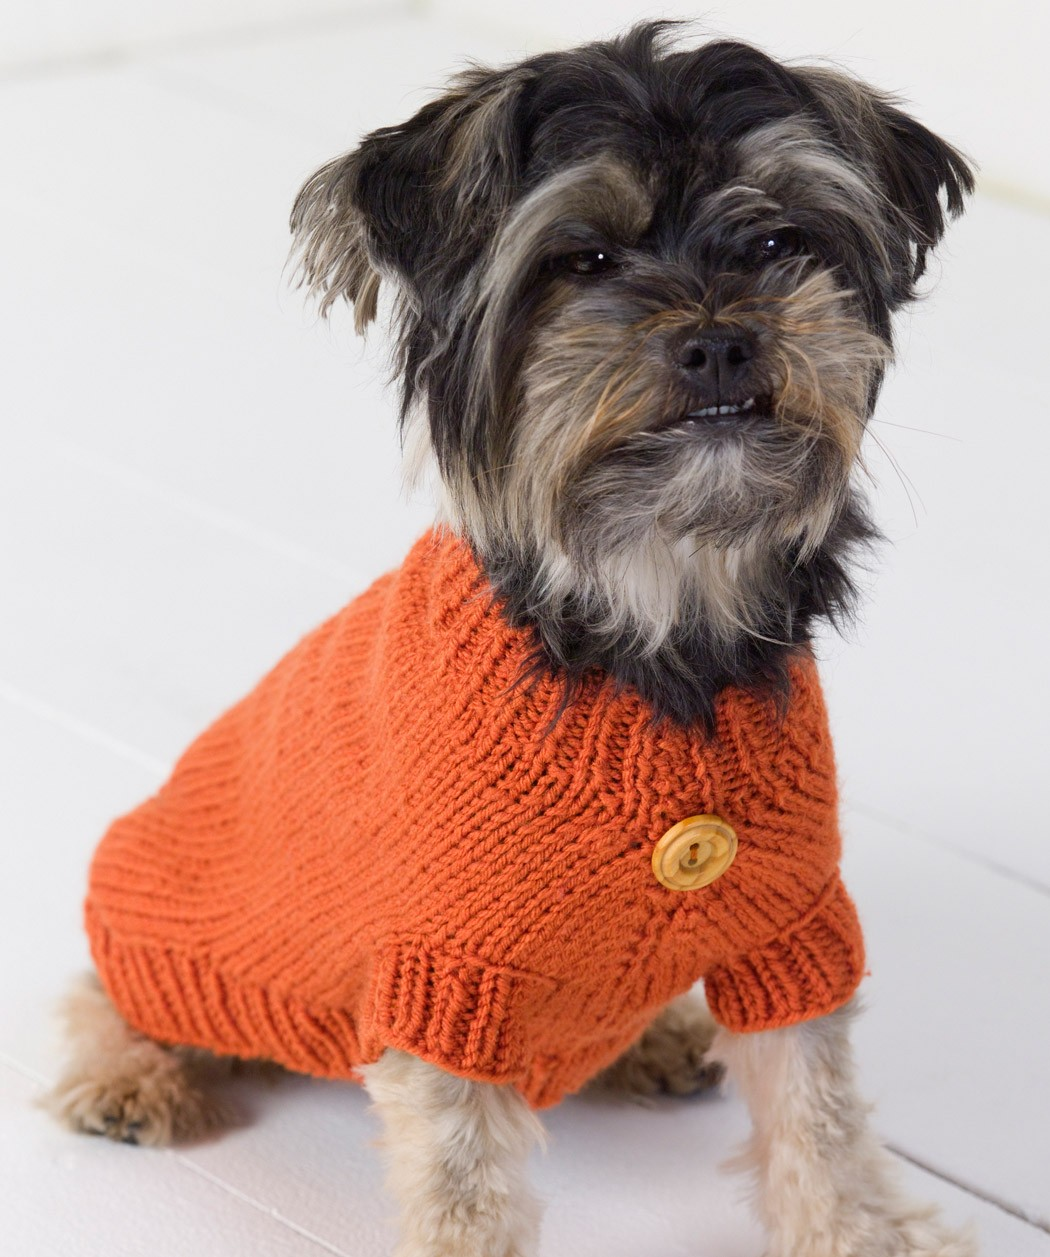 Free Knitting Patterns For Very Small Dogs : Crochet Dog Free Knit Pattern Small Free Patterns Dog ...